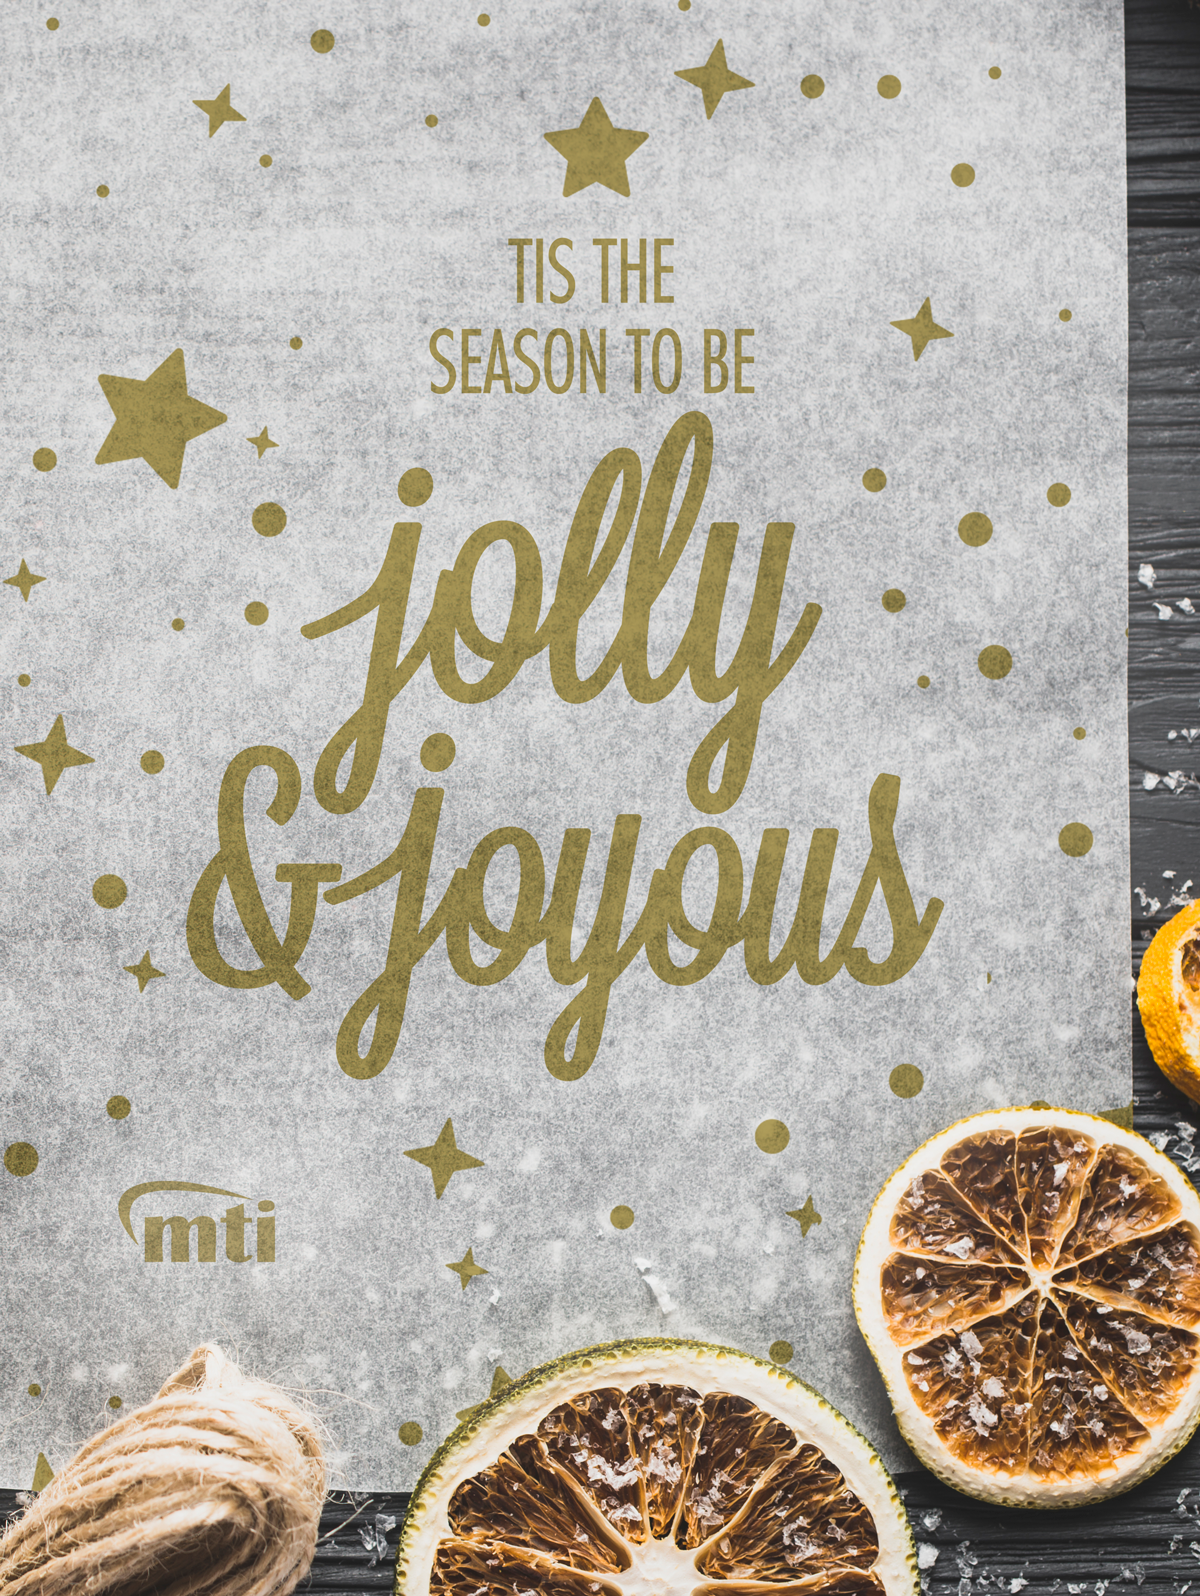 Jolly and Joyous | Christmas Reflections from MTI